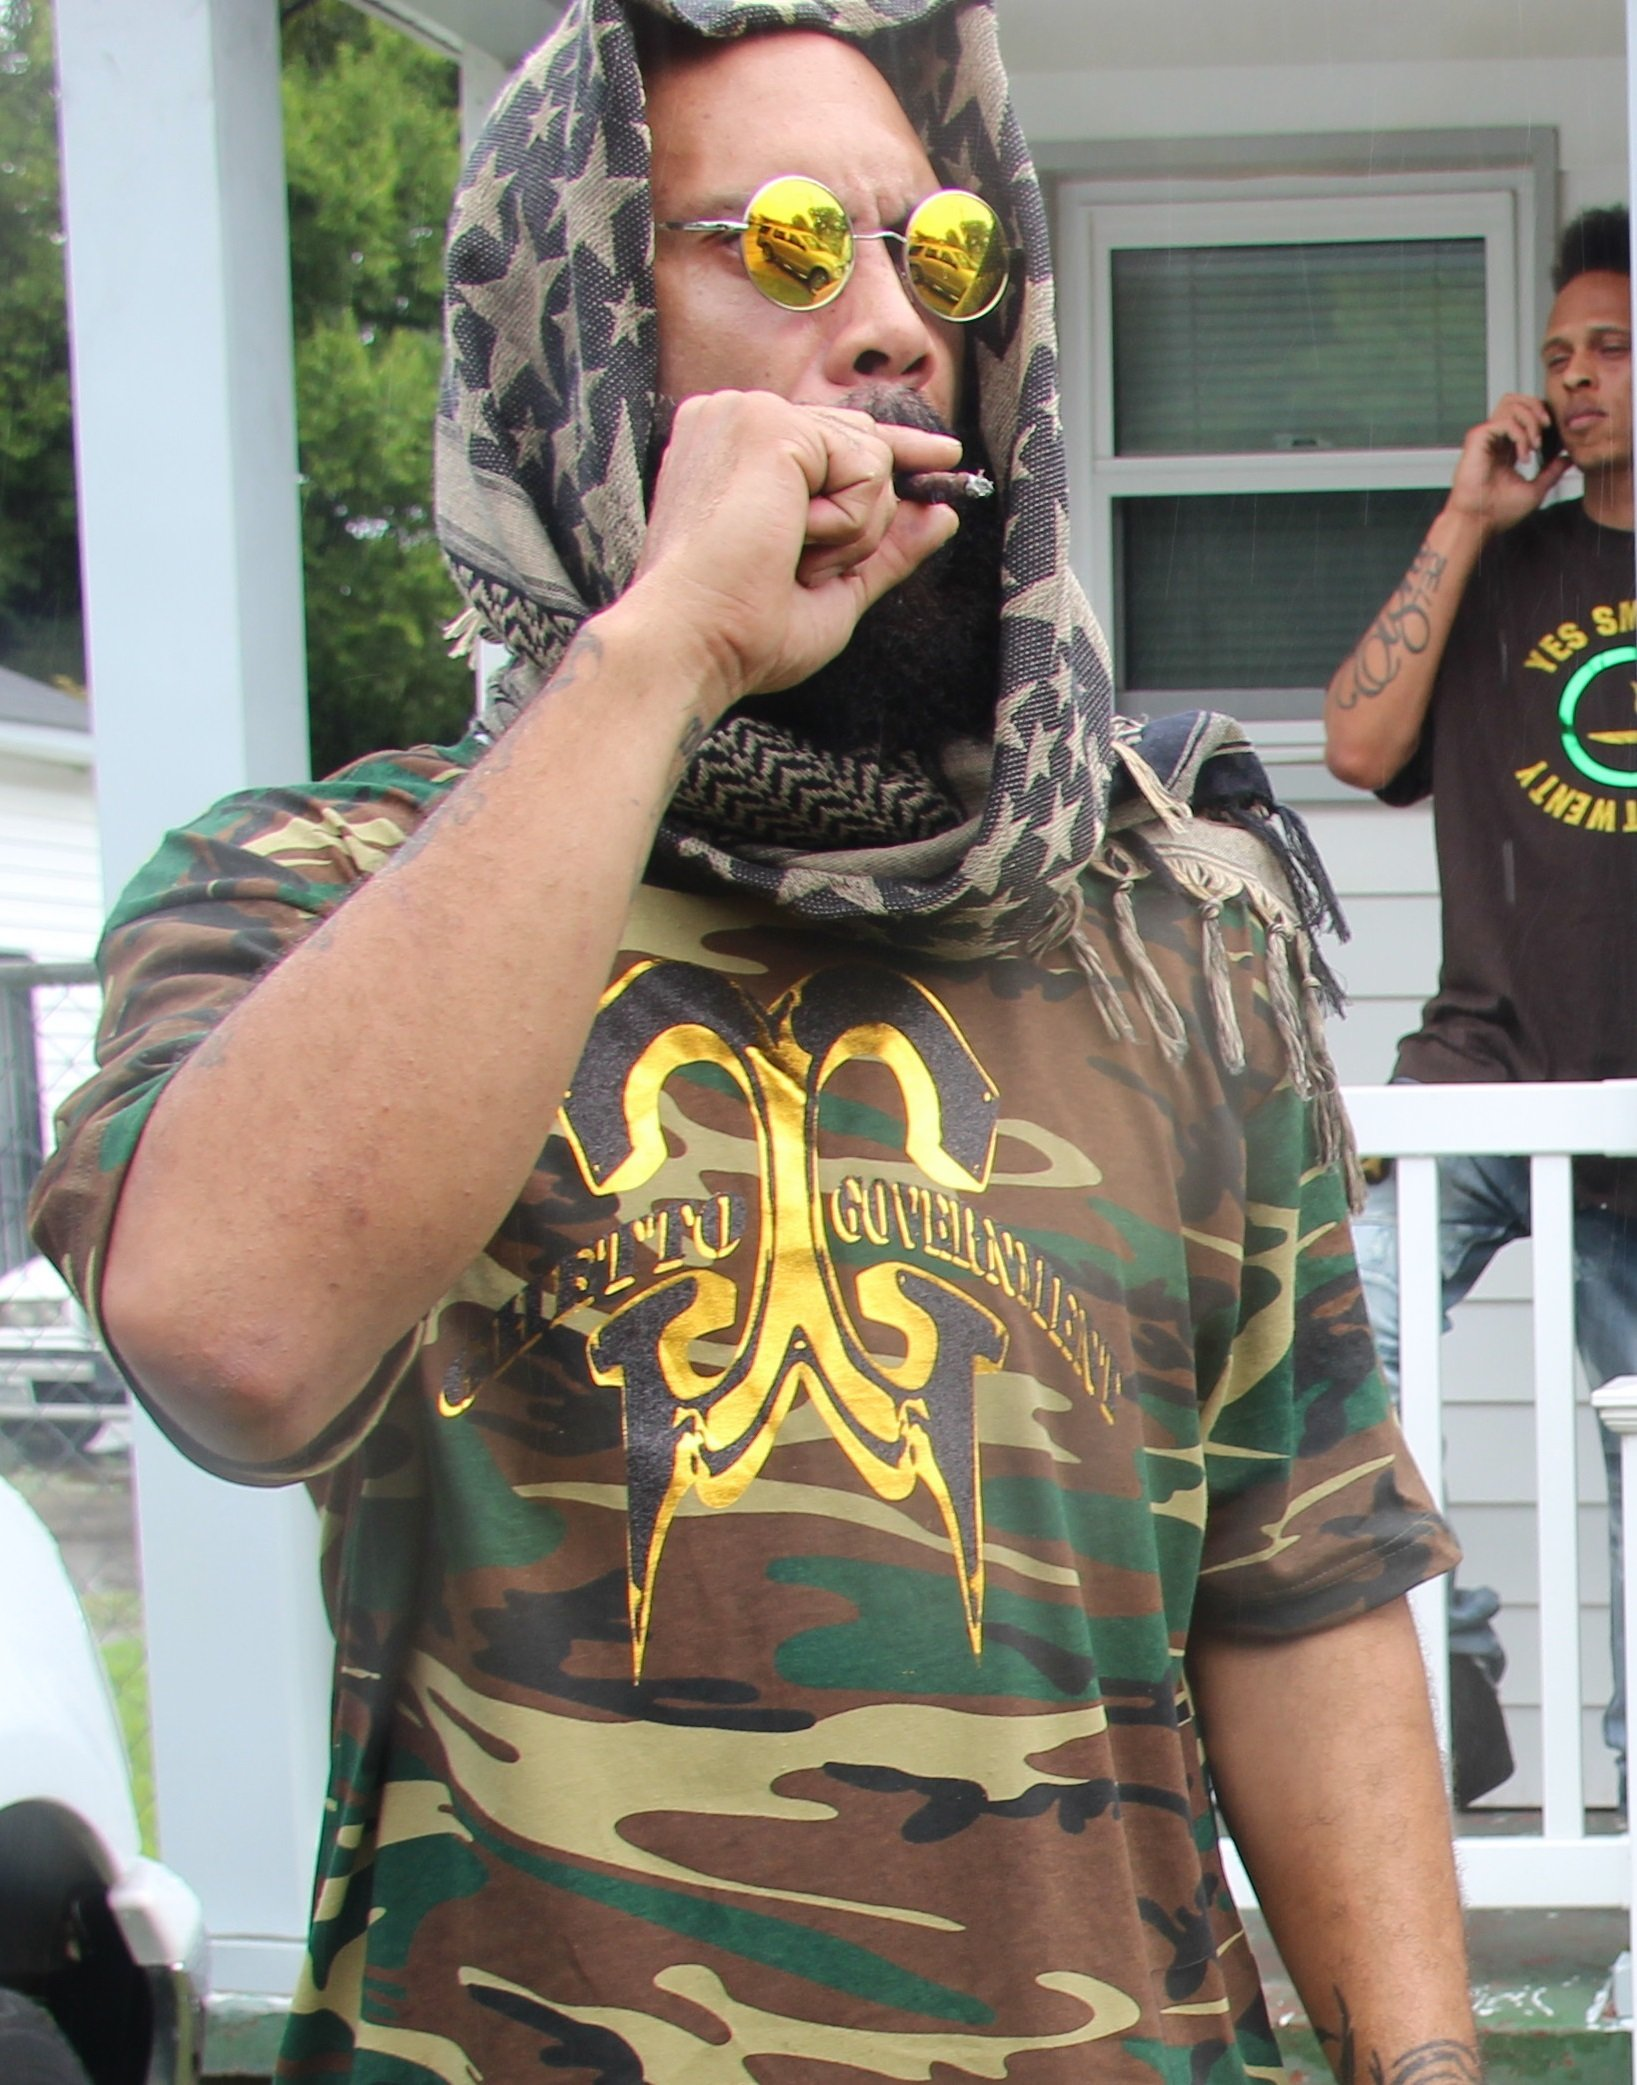 Camoflauge Ghetto Government T-Shirt